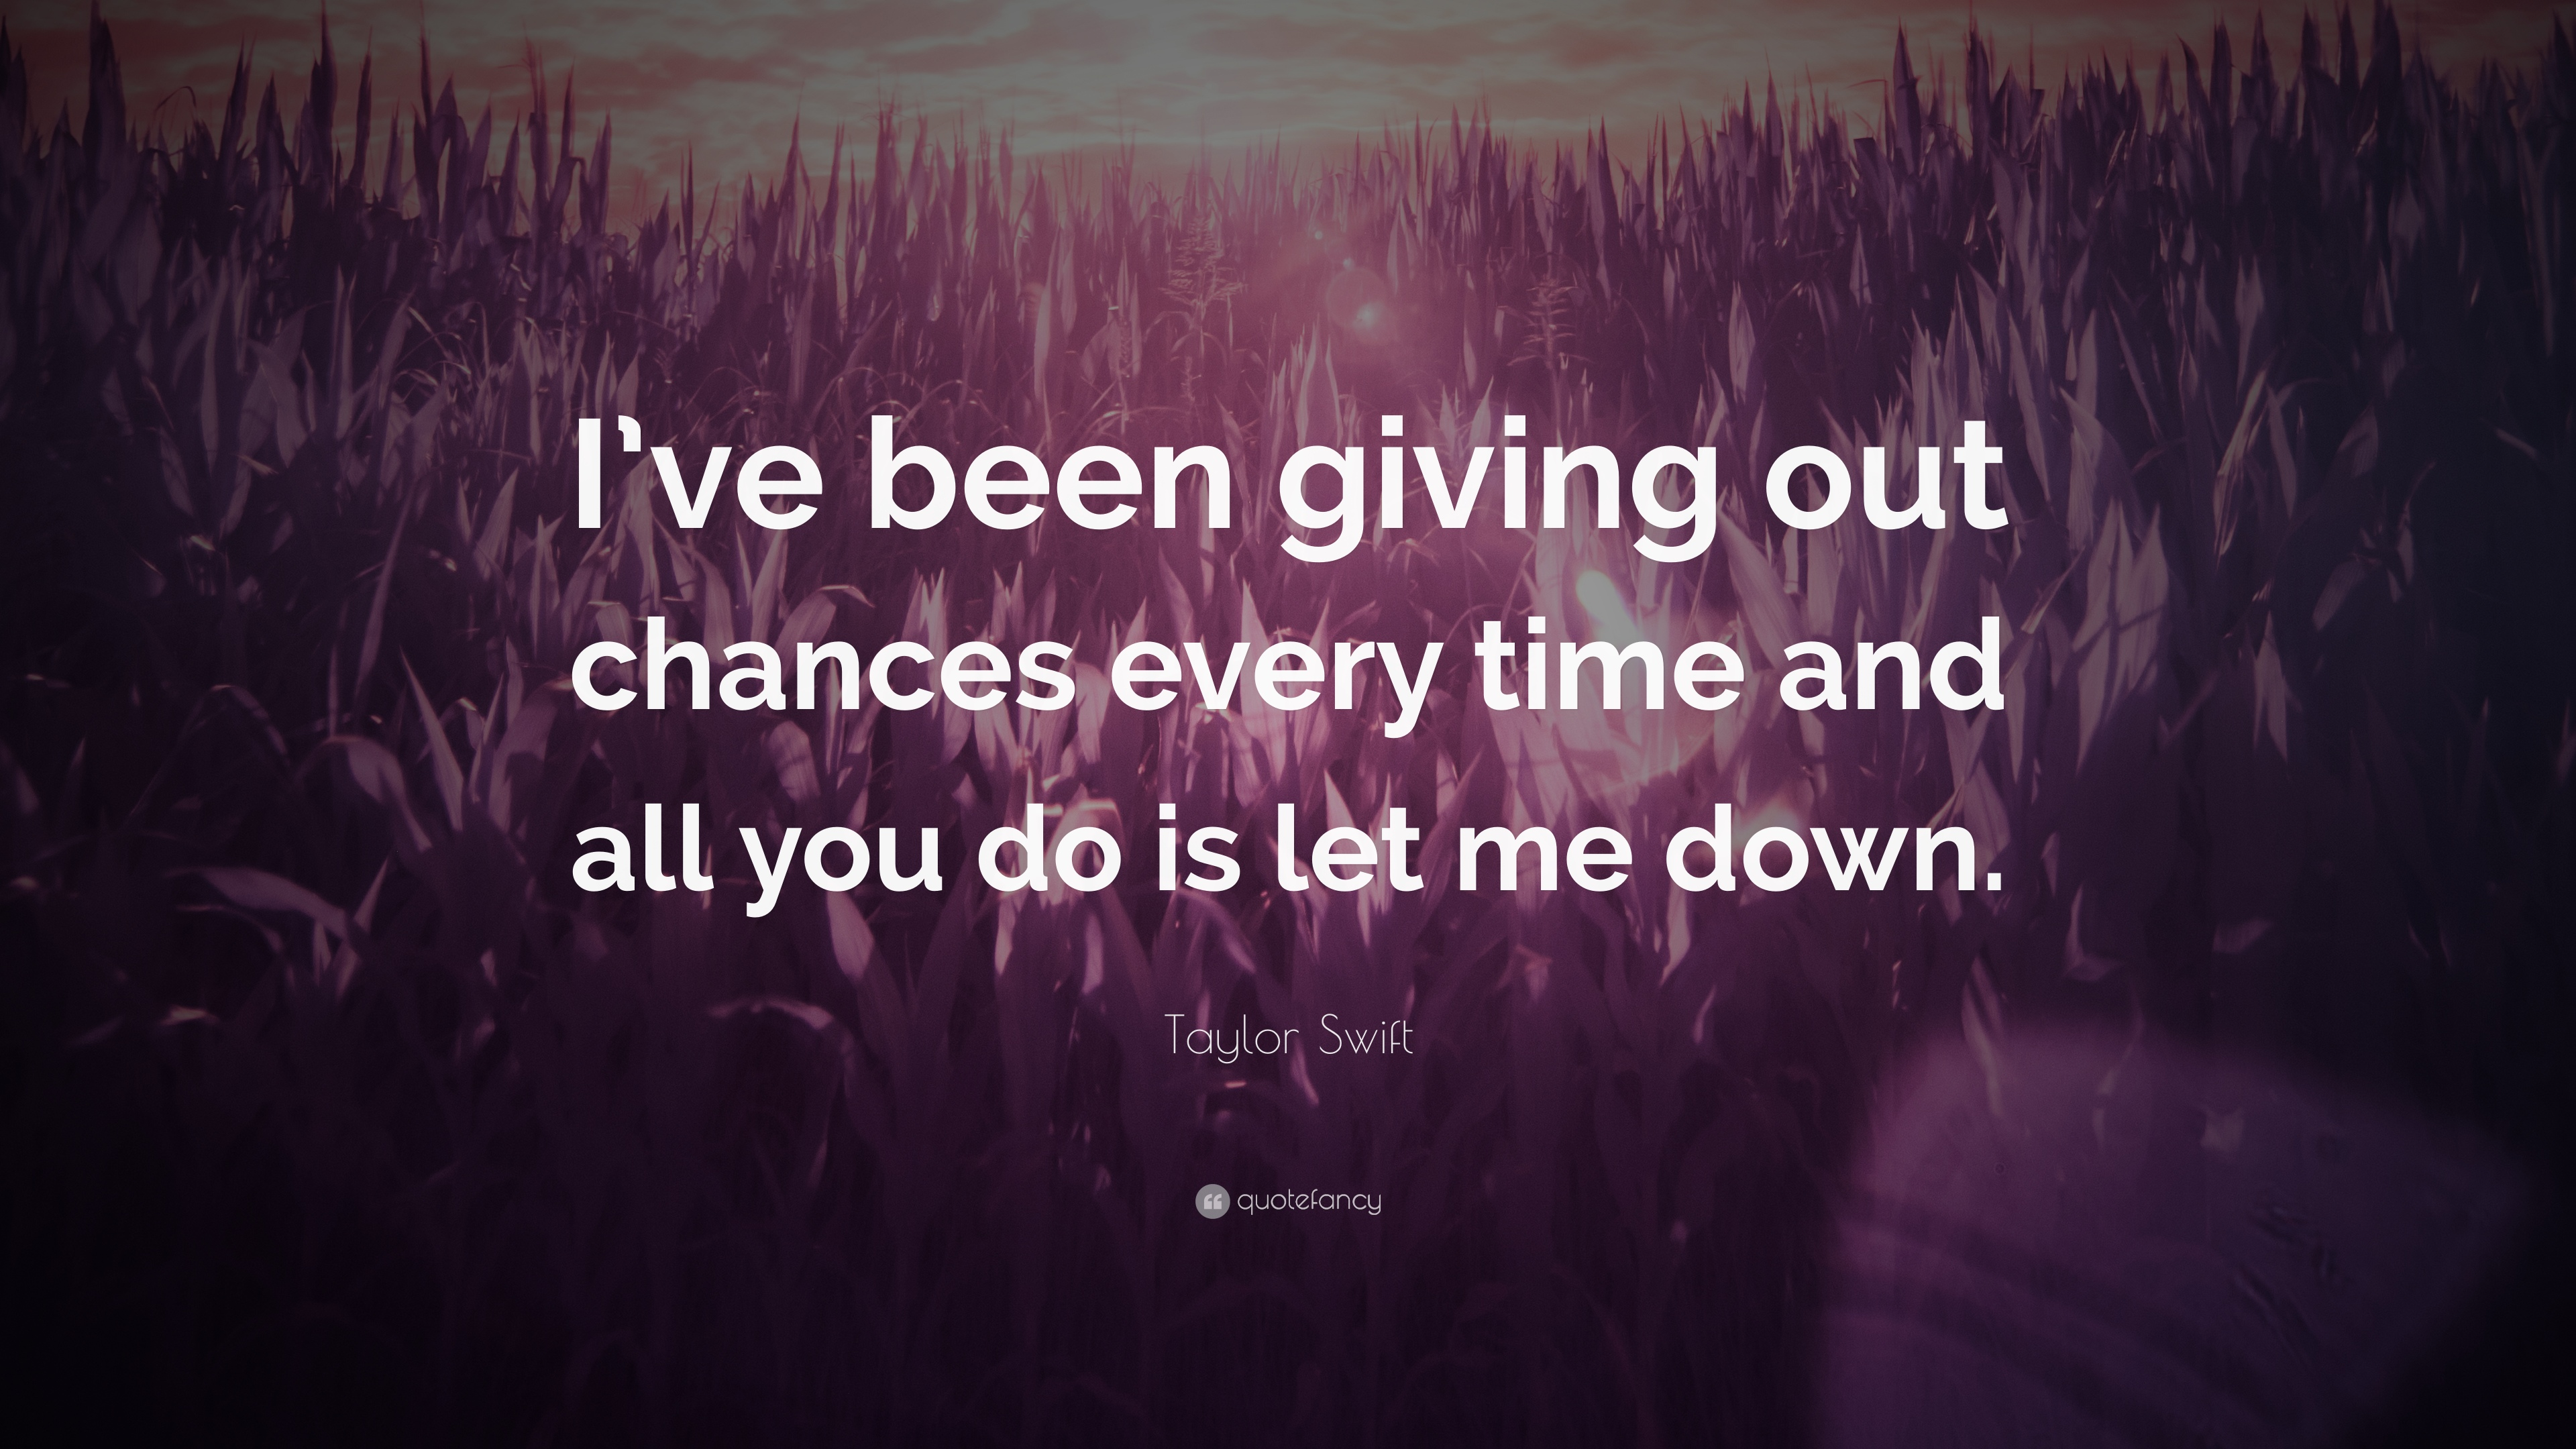 Taylor Swift Quote Ive Been Giving Out Chances Every Time And All